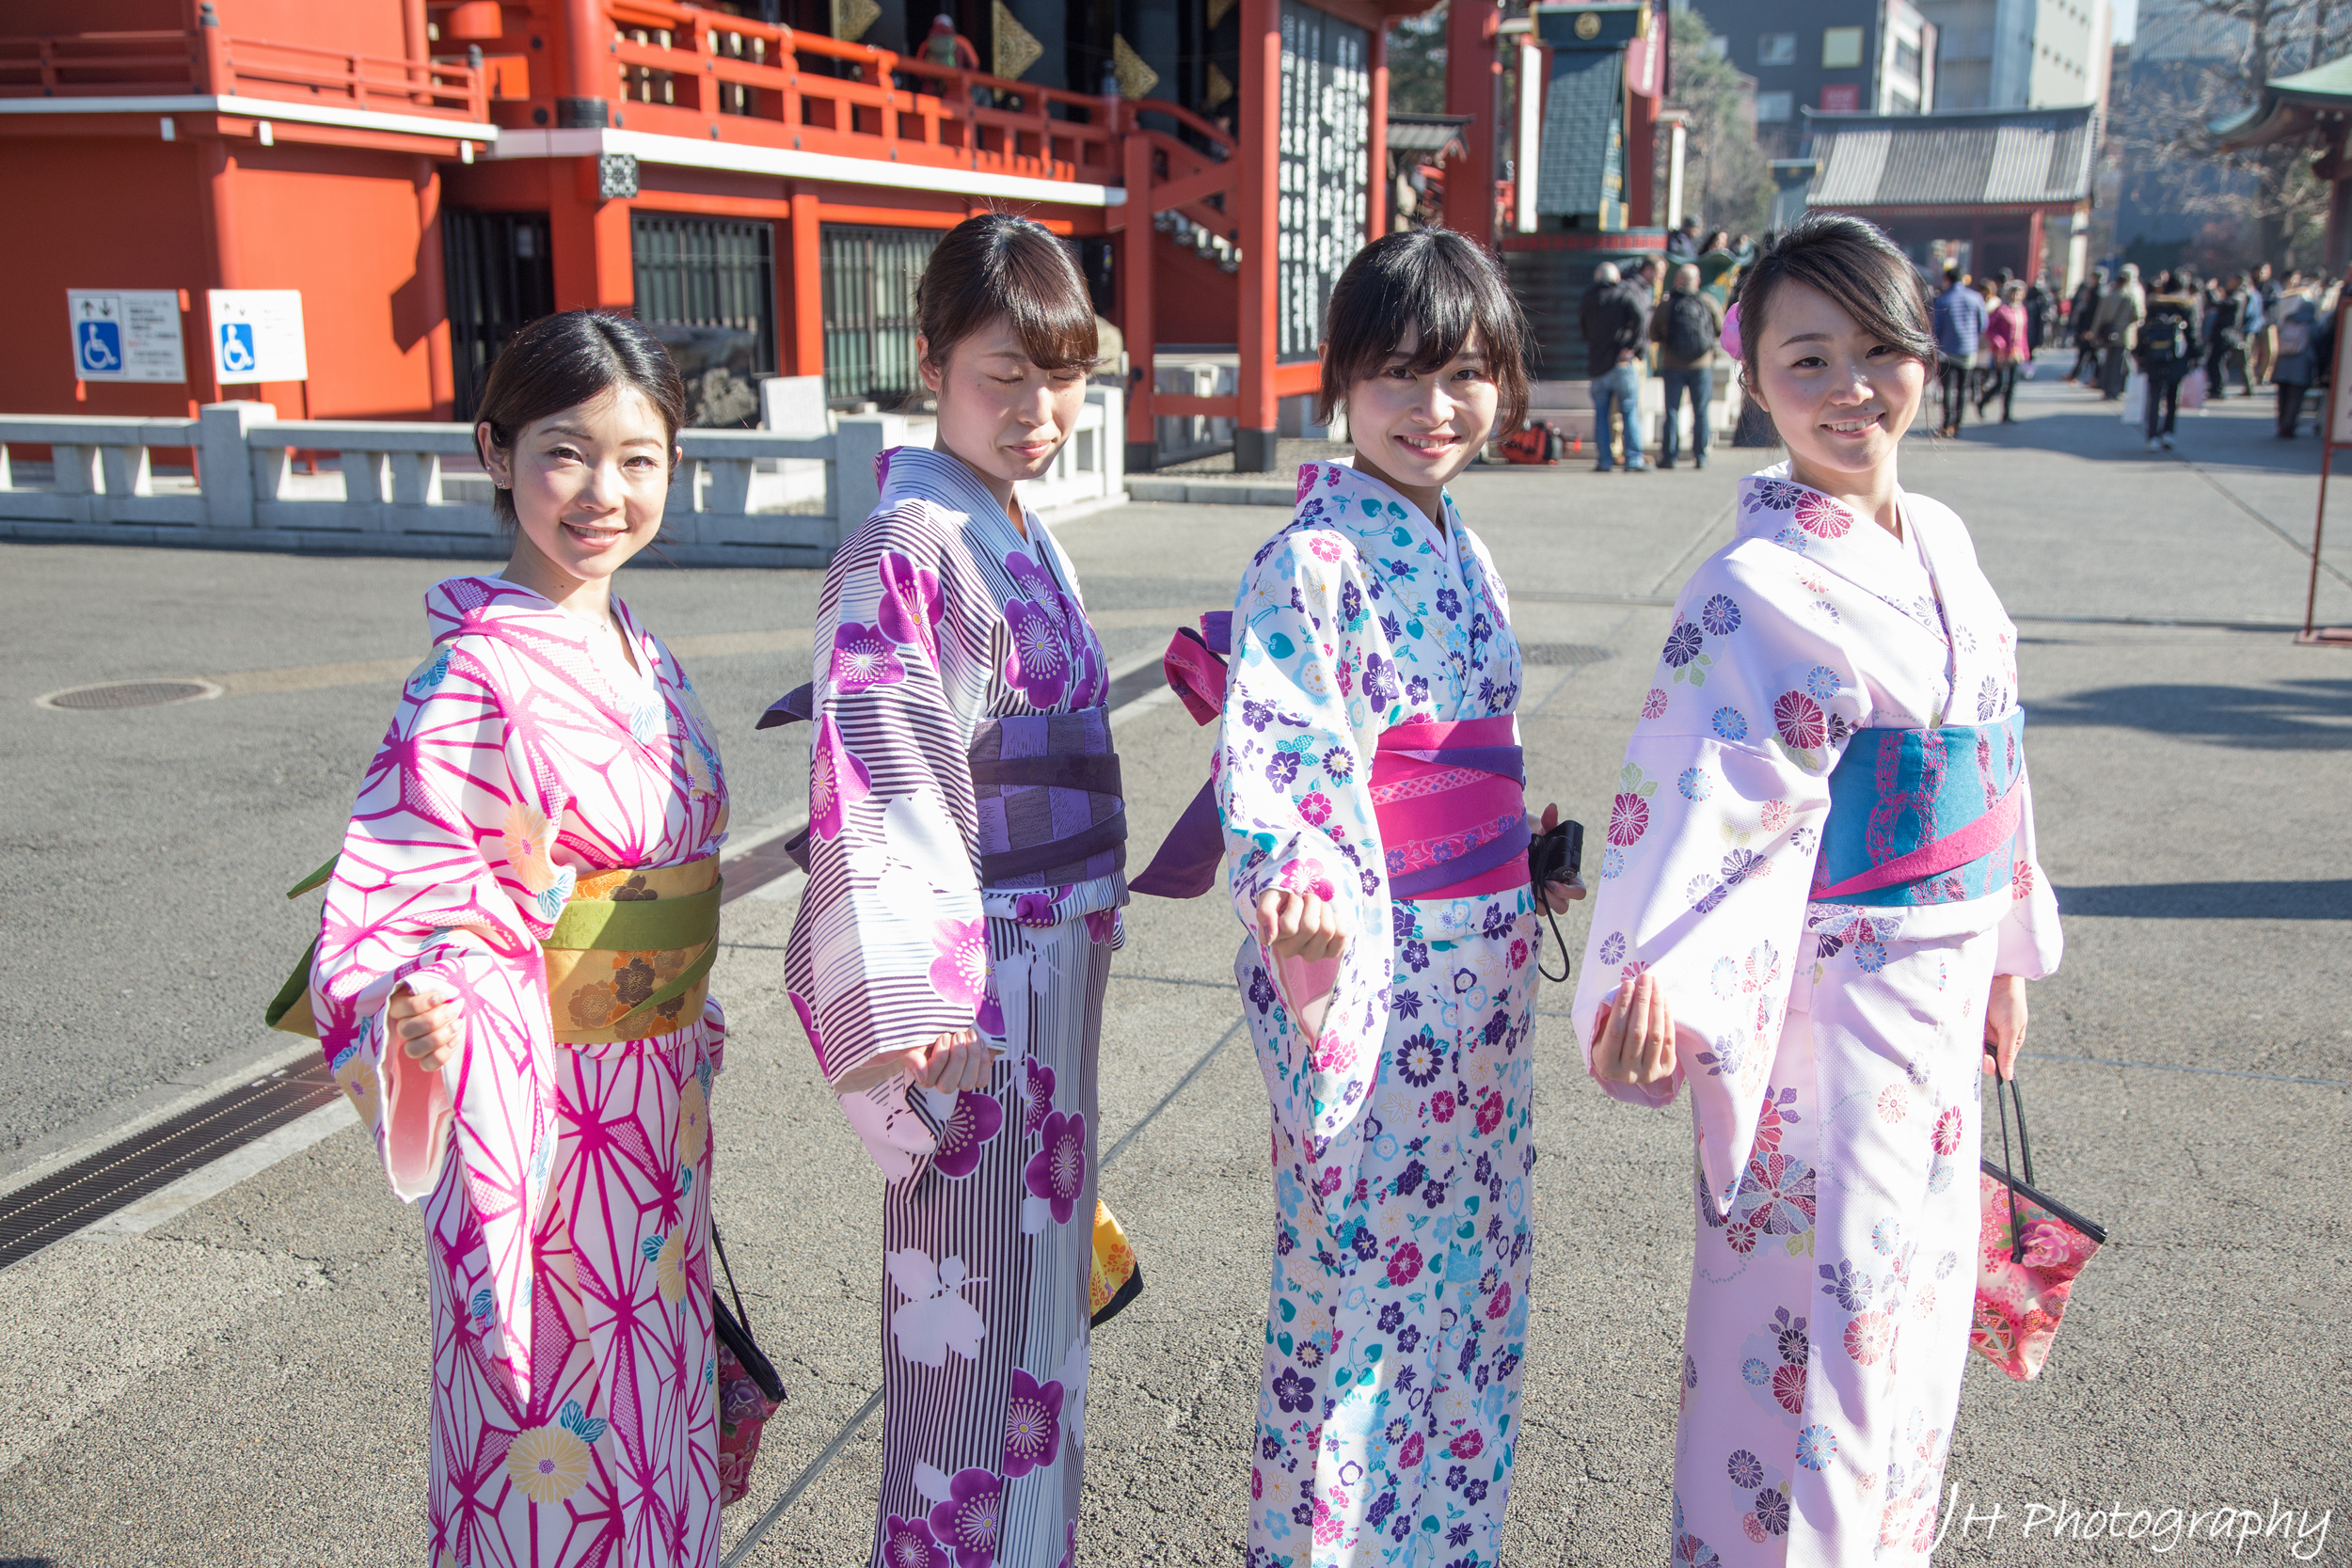 Ladies in traditional Japanese outfits at Senso-ji